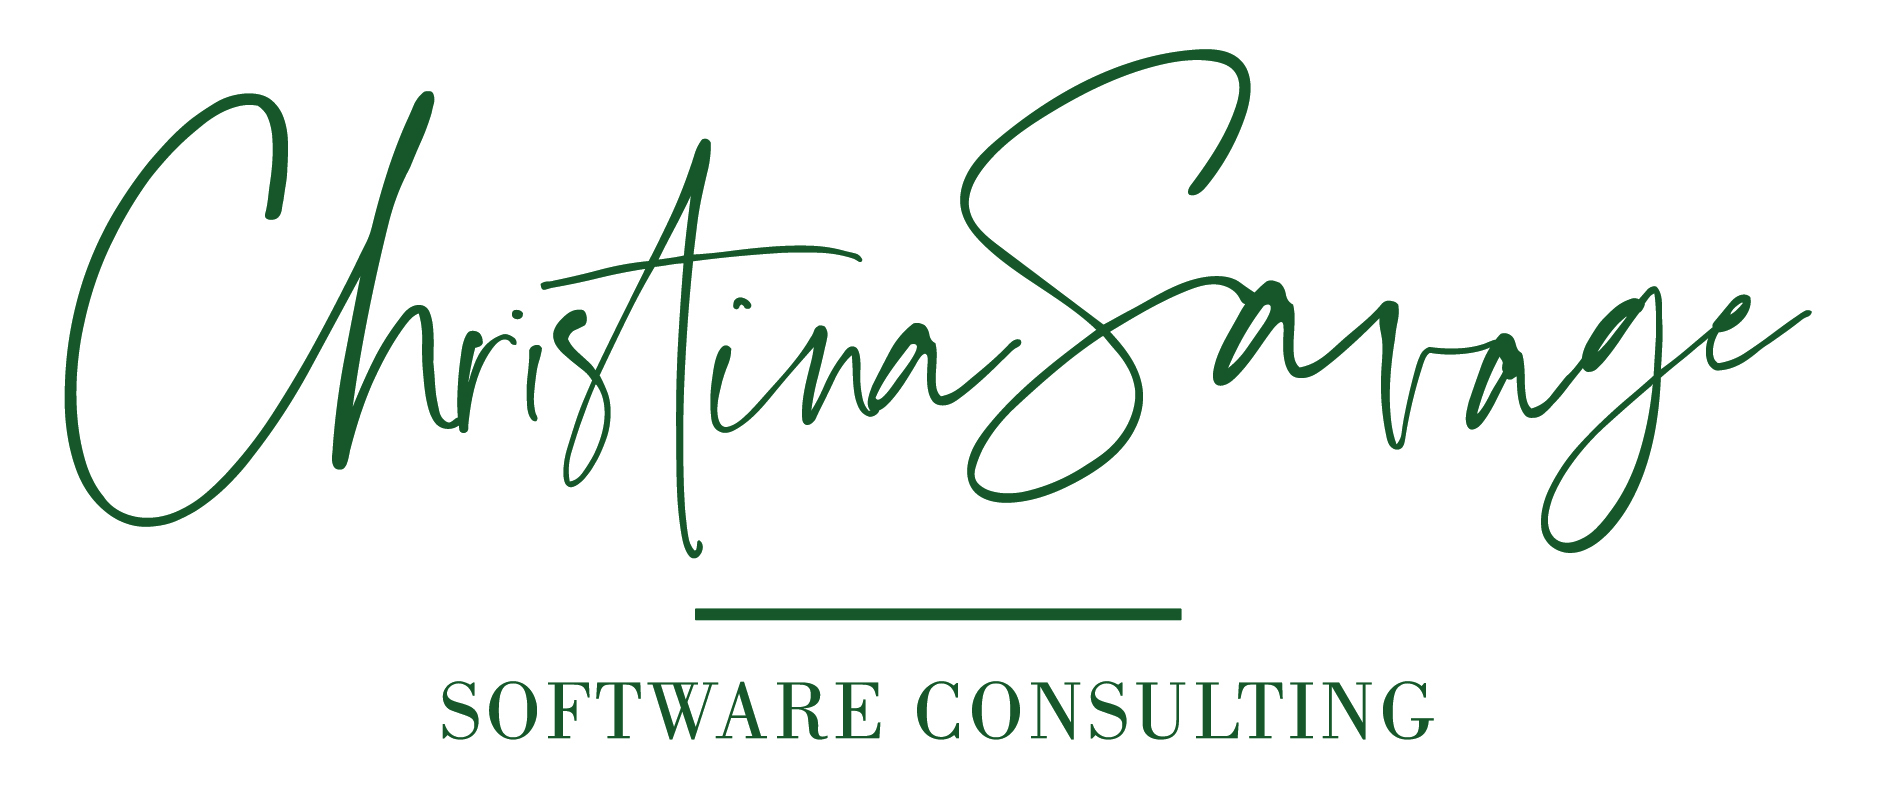 Christina-Savage-Software-Consulting-Emerald@2x-100